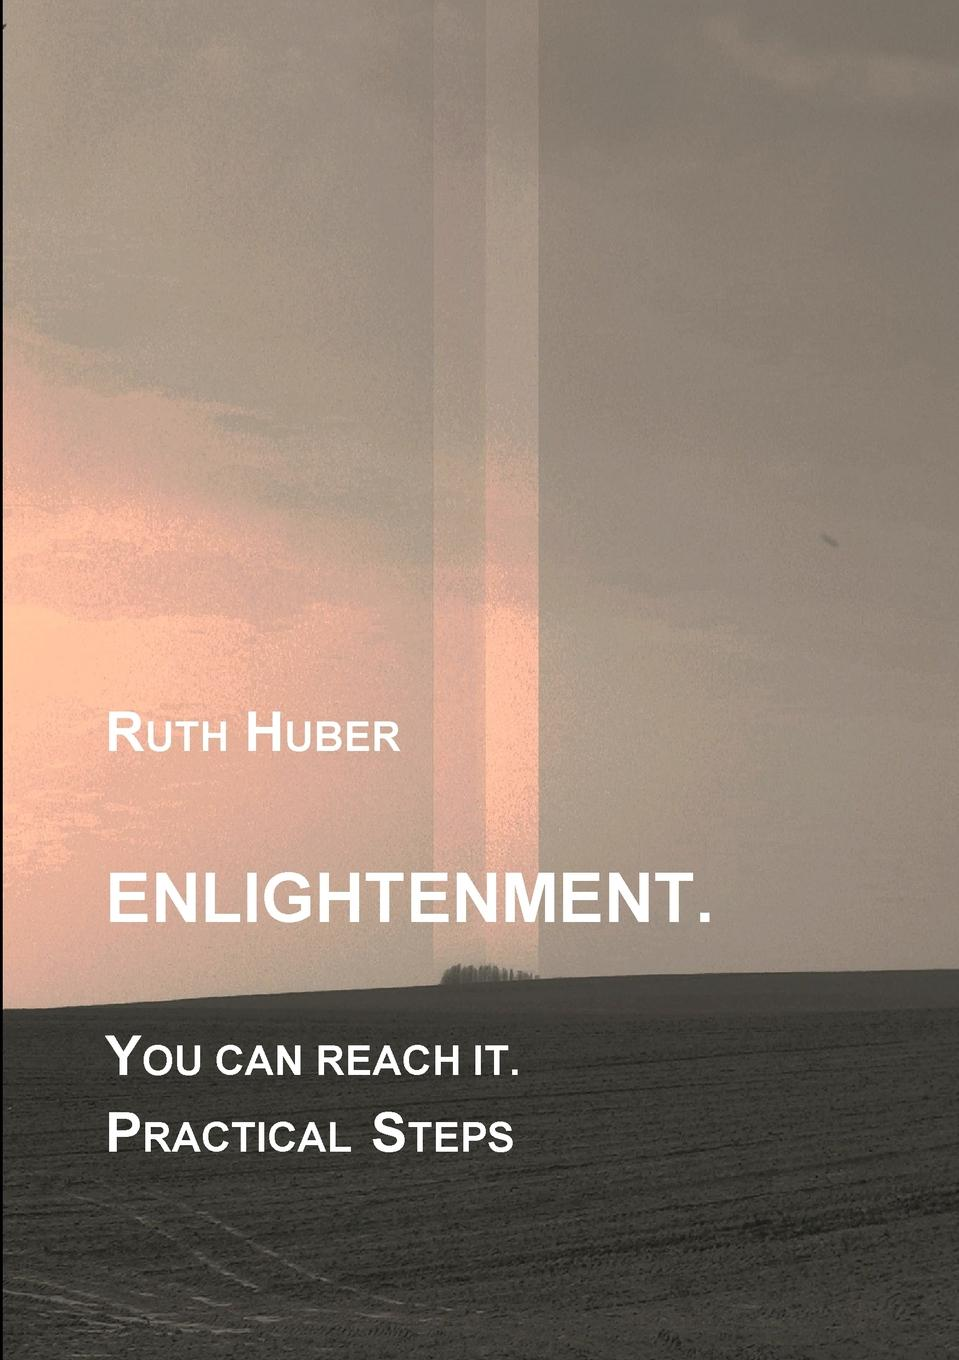 Ruth Huber Enlightenment. You can reach it. Practical Steps free shipping kayipht cm400ha1 24h can directly buy or contact the seller